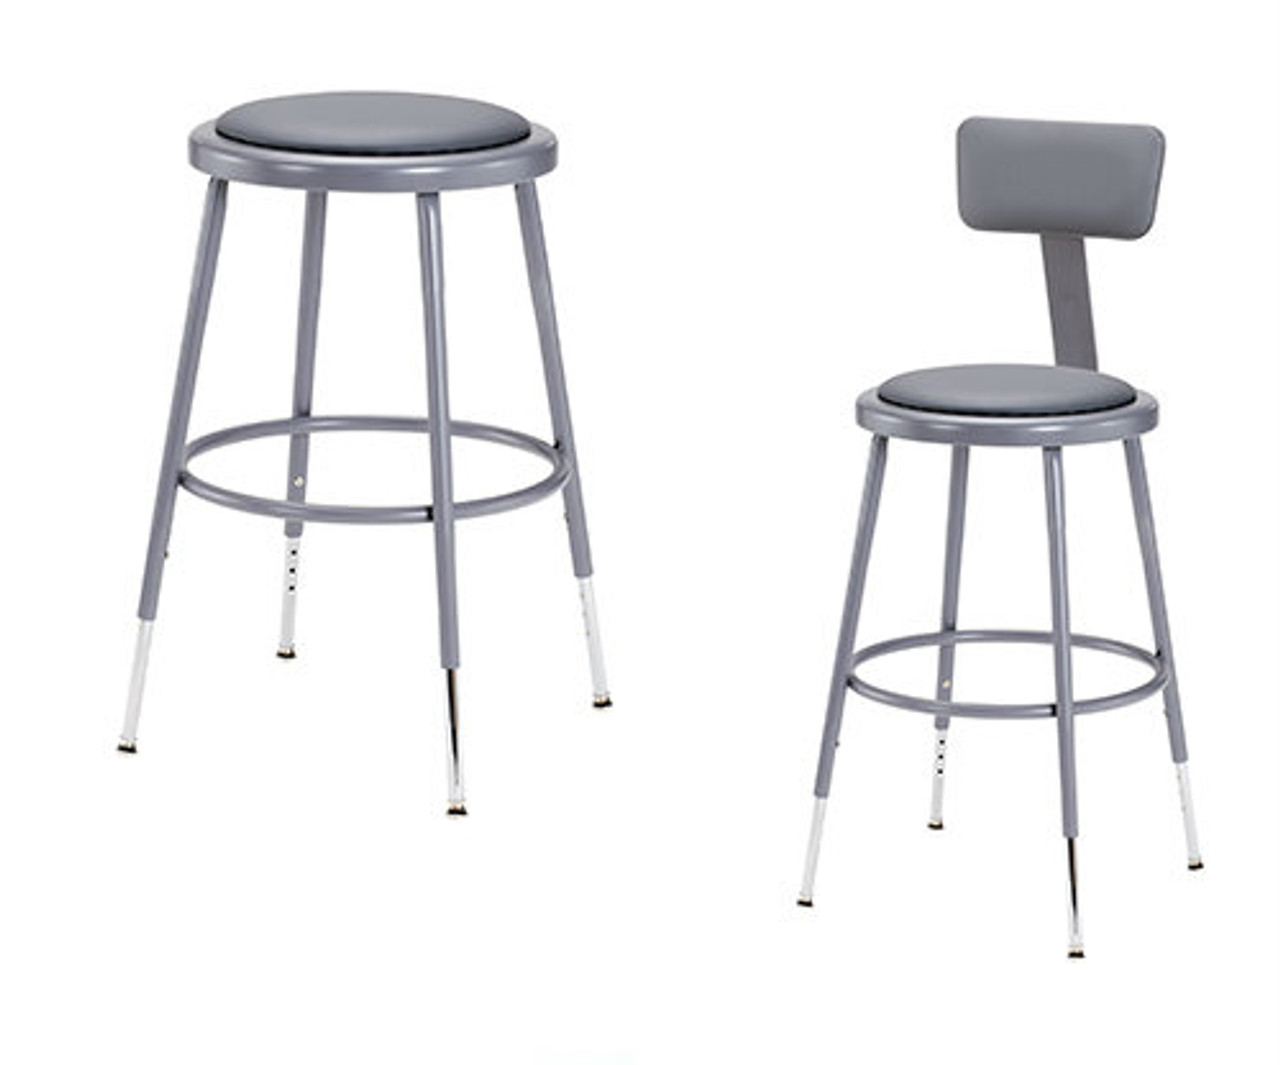 Strange Gray Adjustable Round Science Lab Stool With Padded Seat And Optional Backrest By National Public Seating Gmtry Best Dining Table And Chair Ideas Images Gmtryco